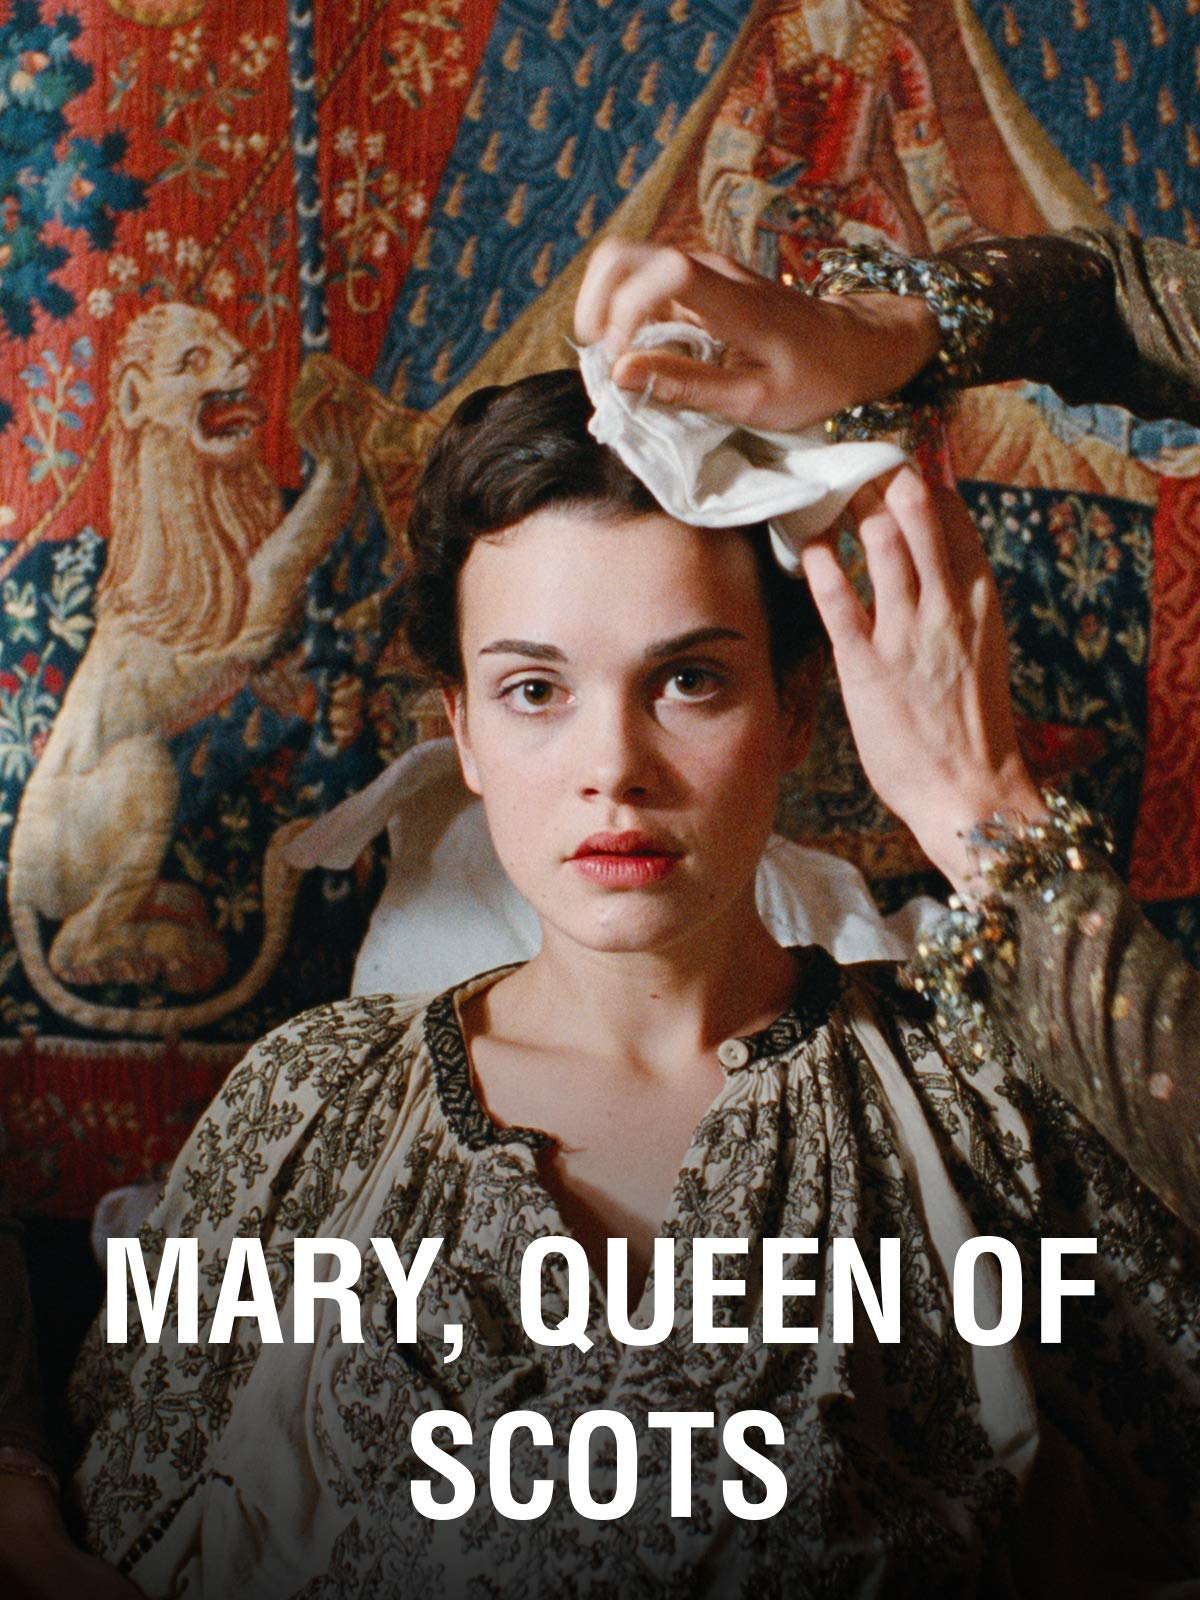 Mary, Queen of Scots (2019) - Josie Rourke   Synopsis